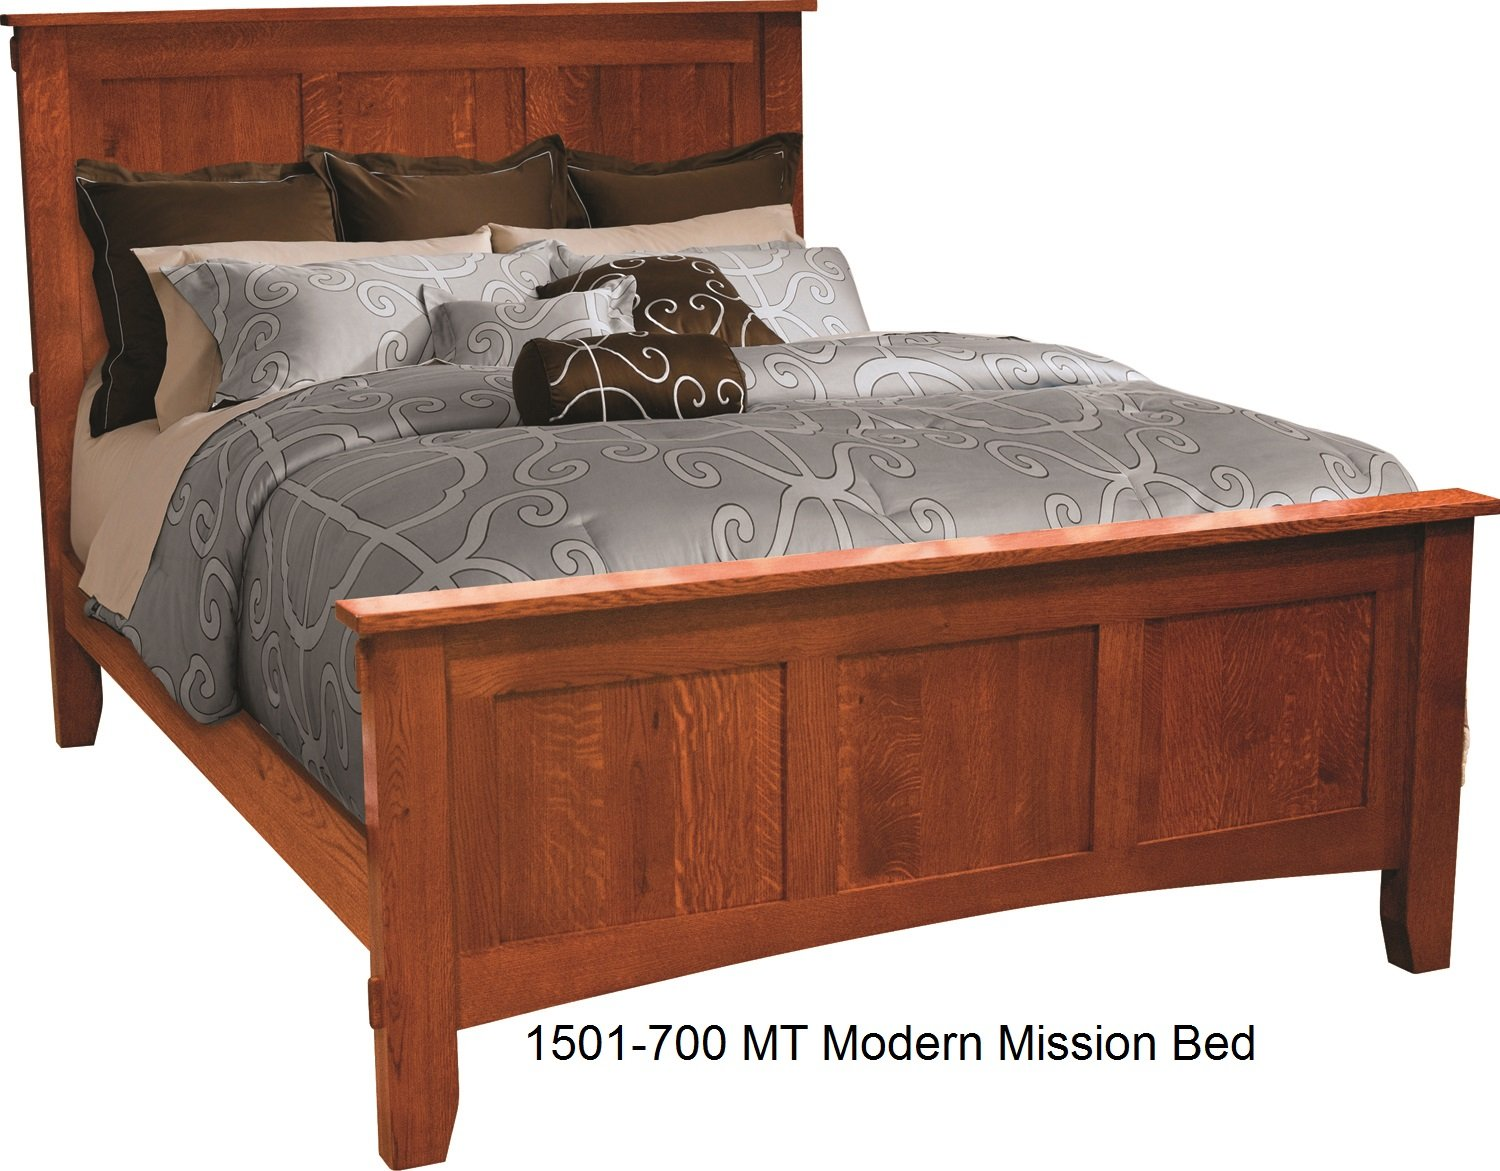 1501-700 MT Modern Mission Queen Bed